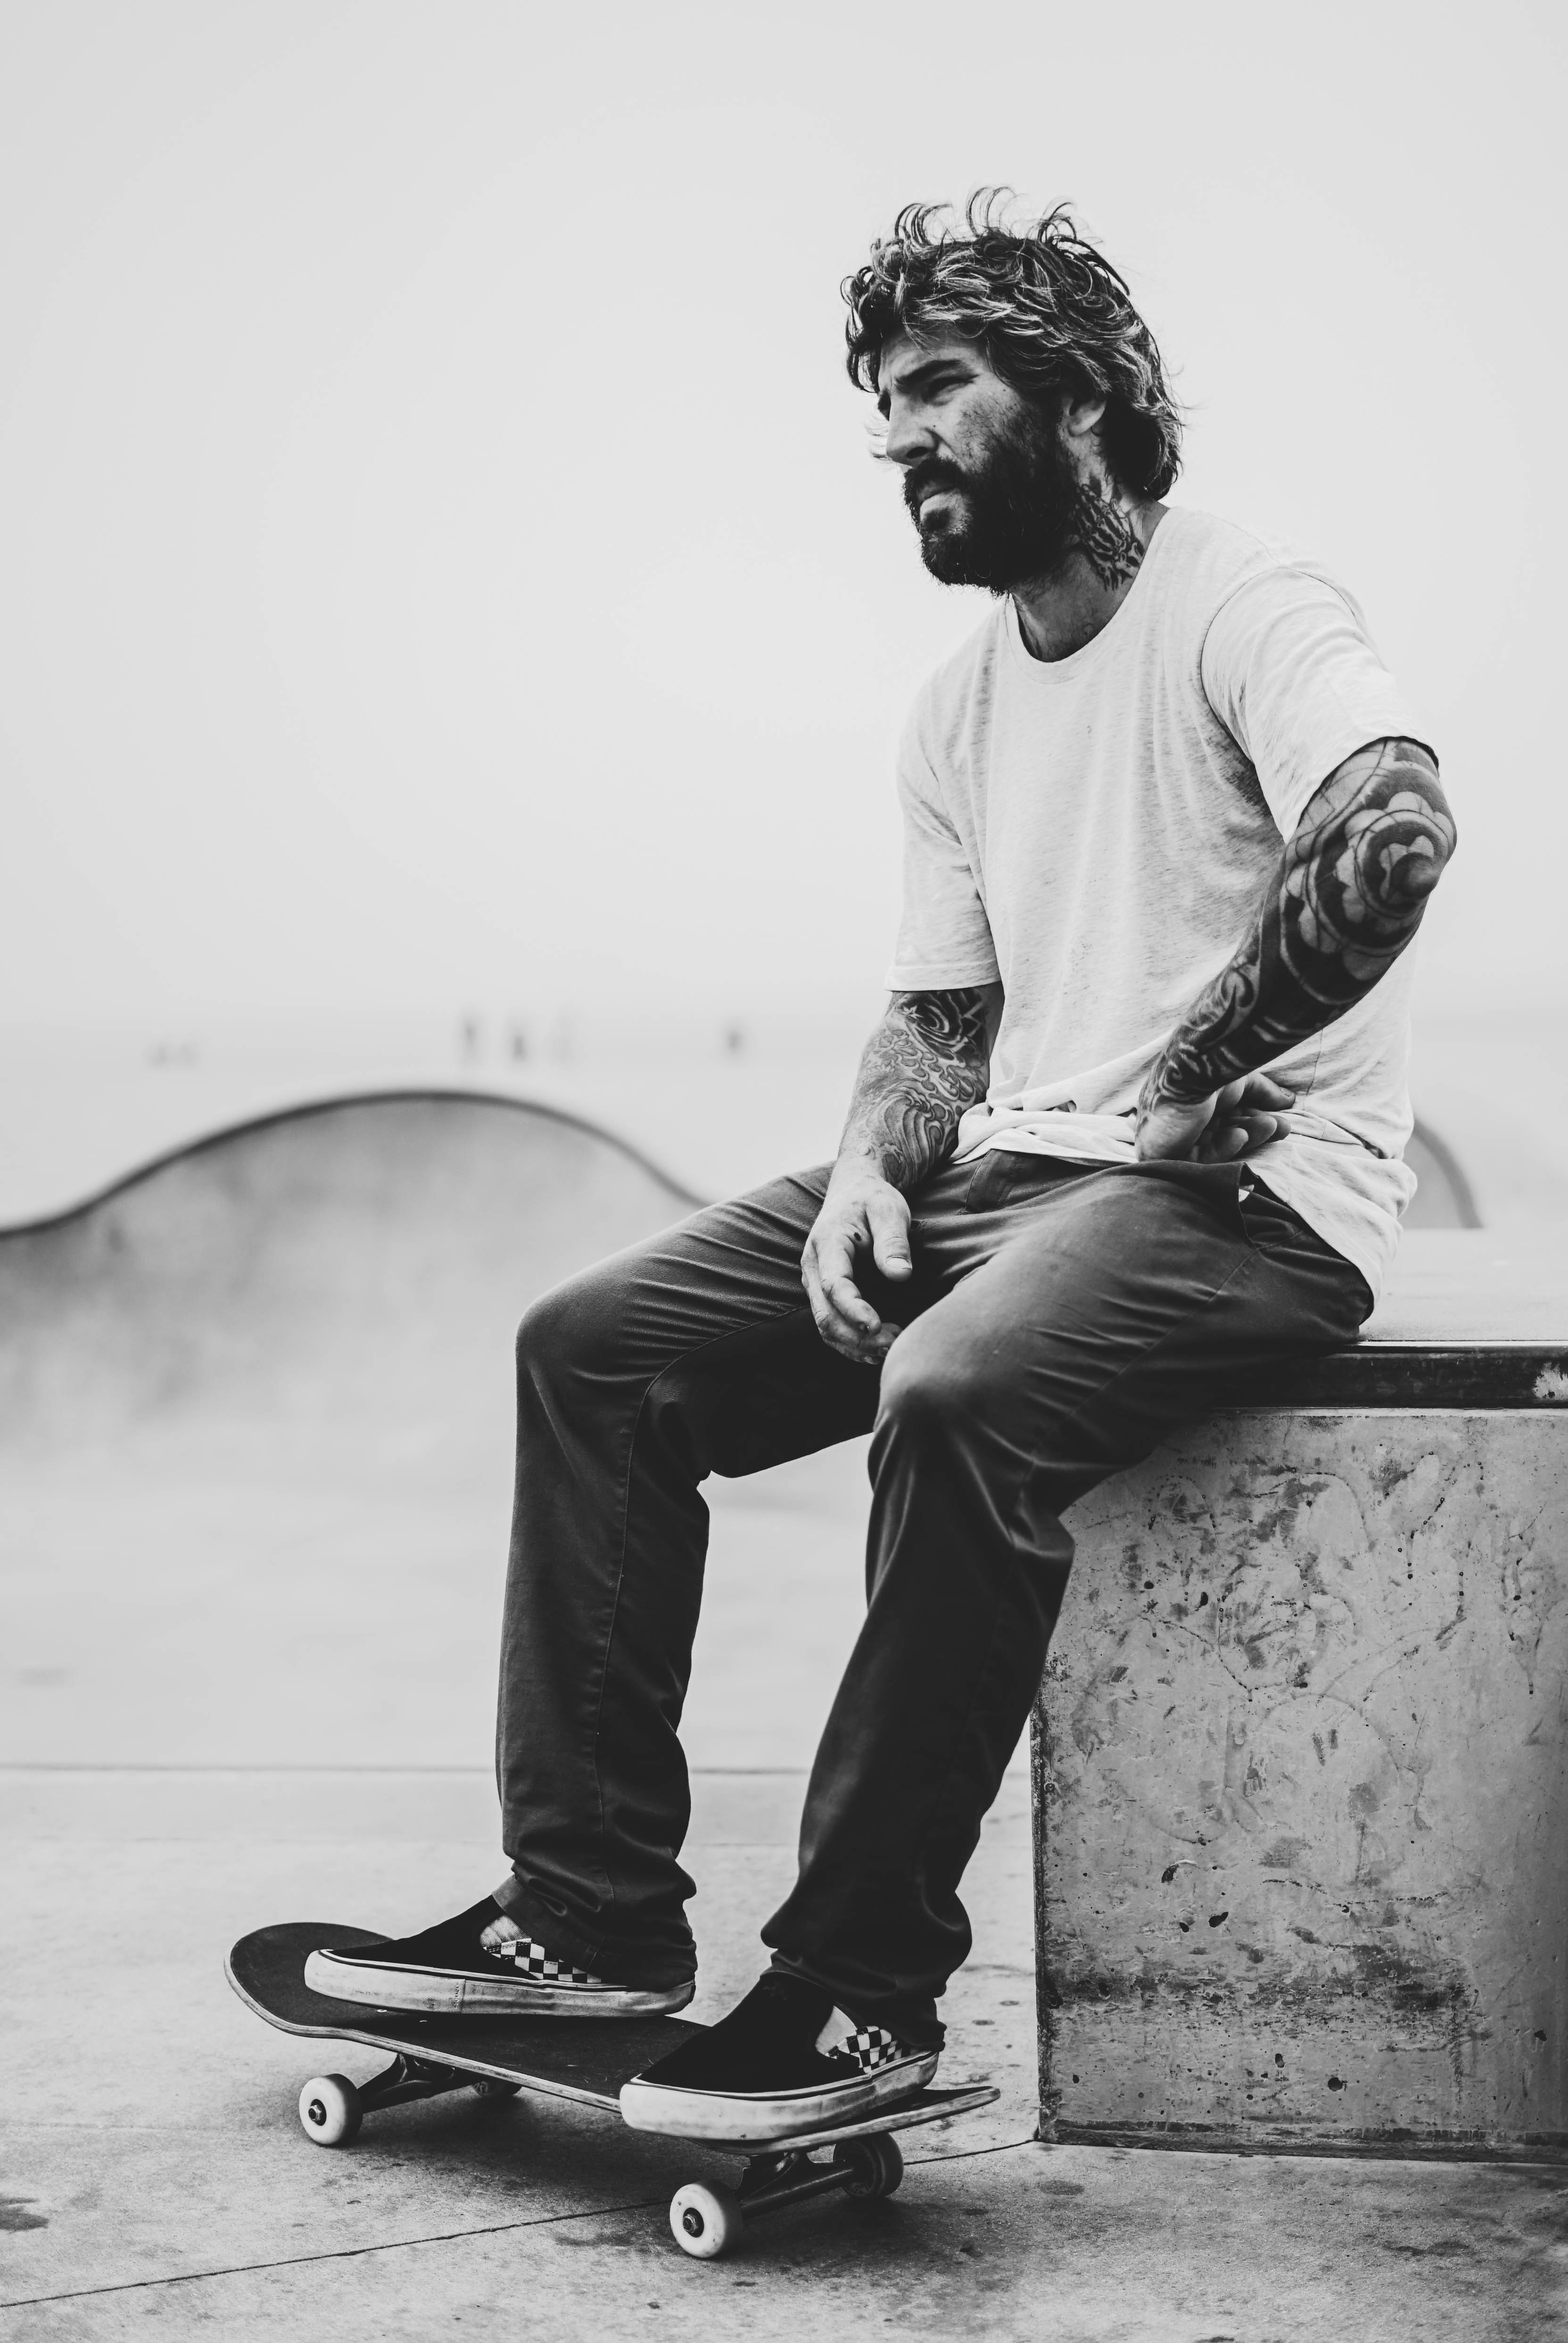 grayscale photography of man sitting on bench while his feet on skateboard